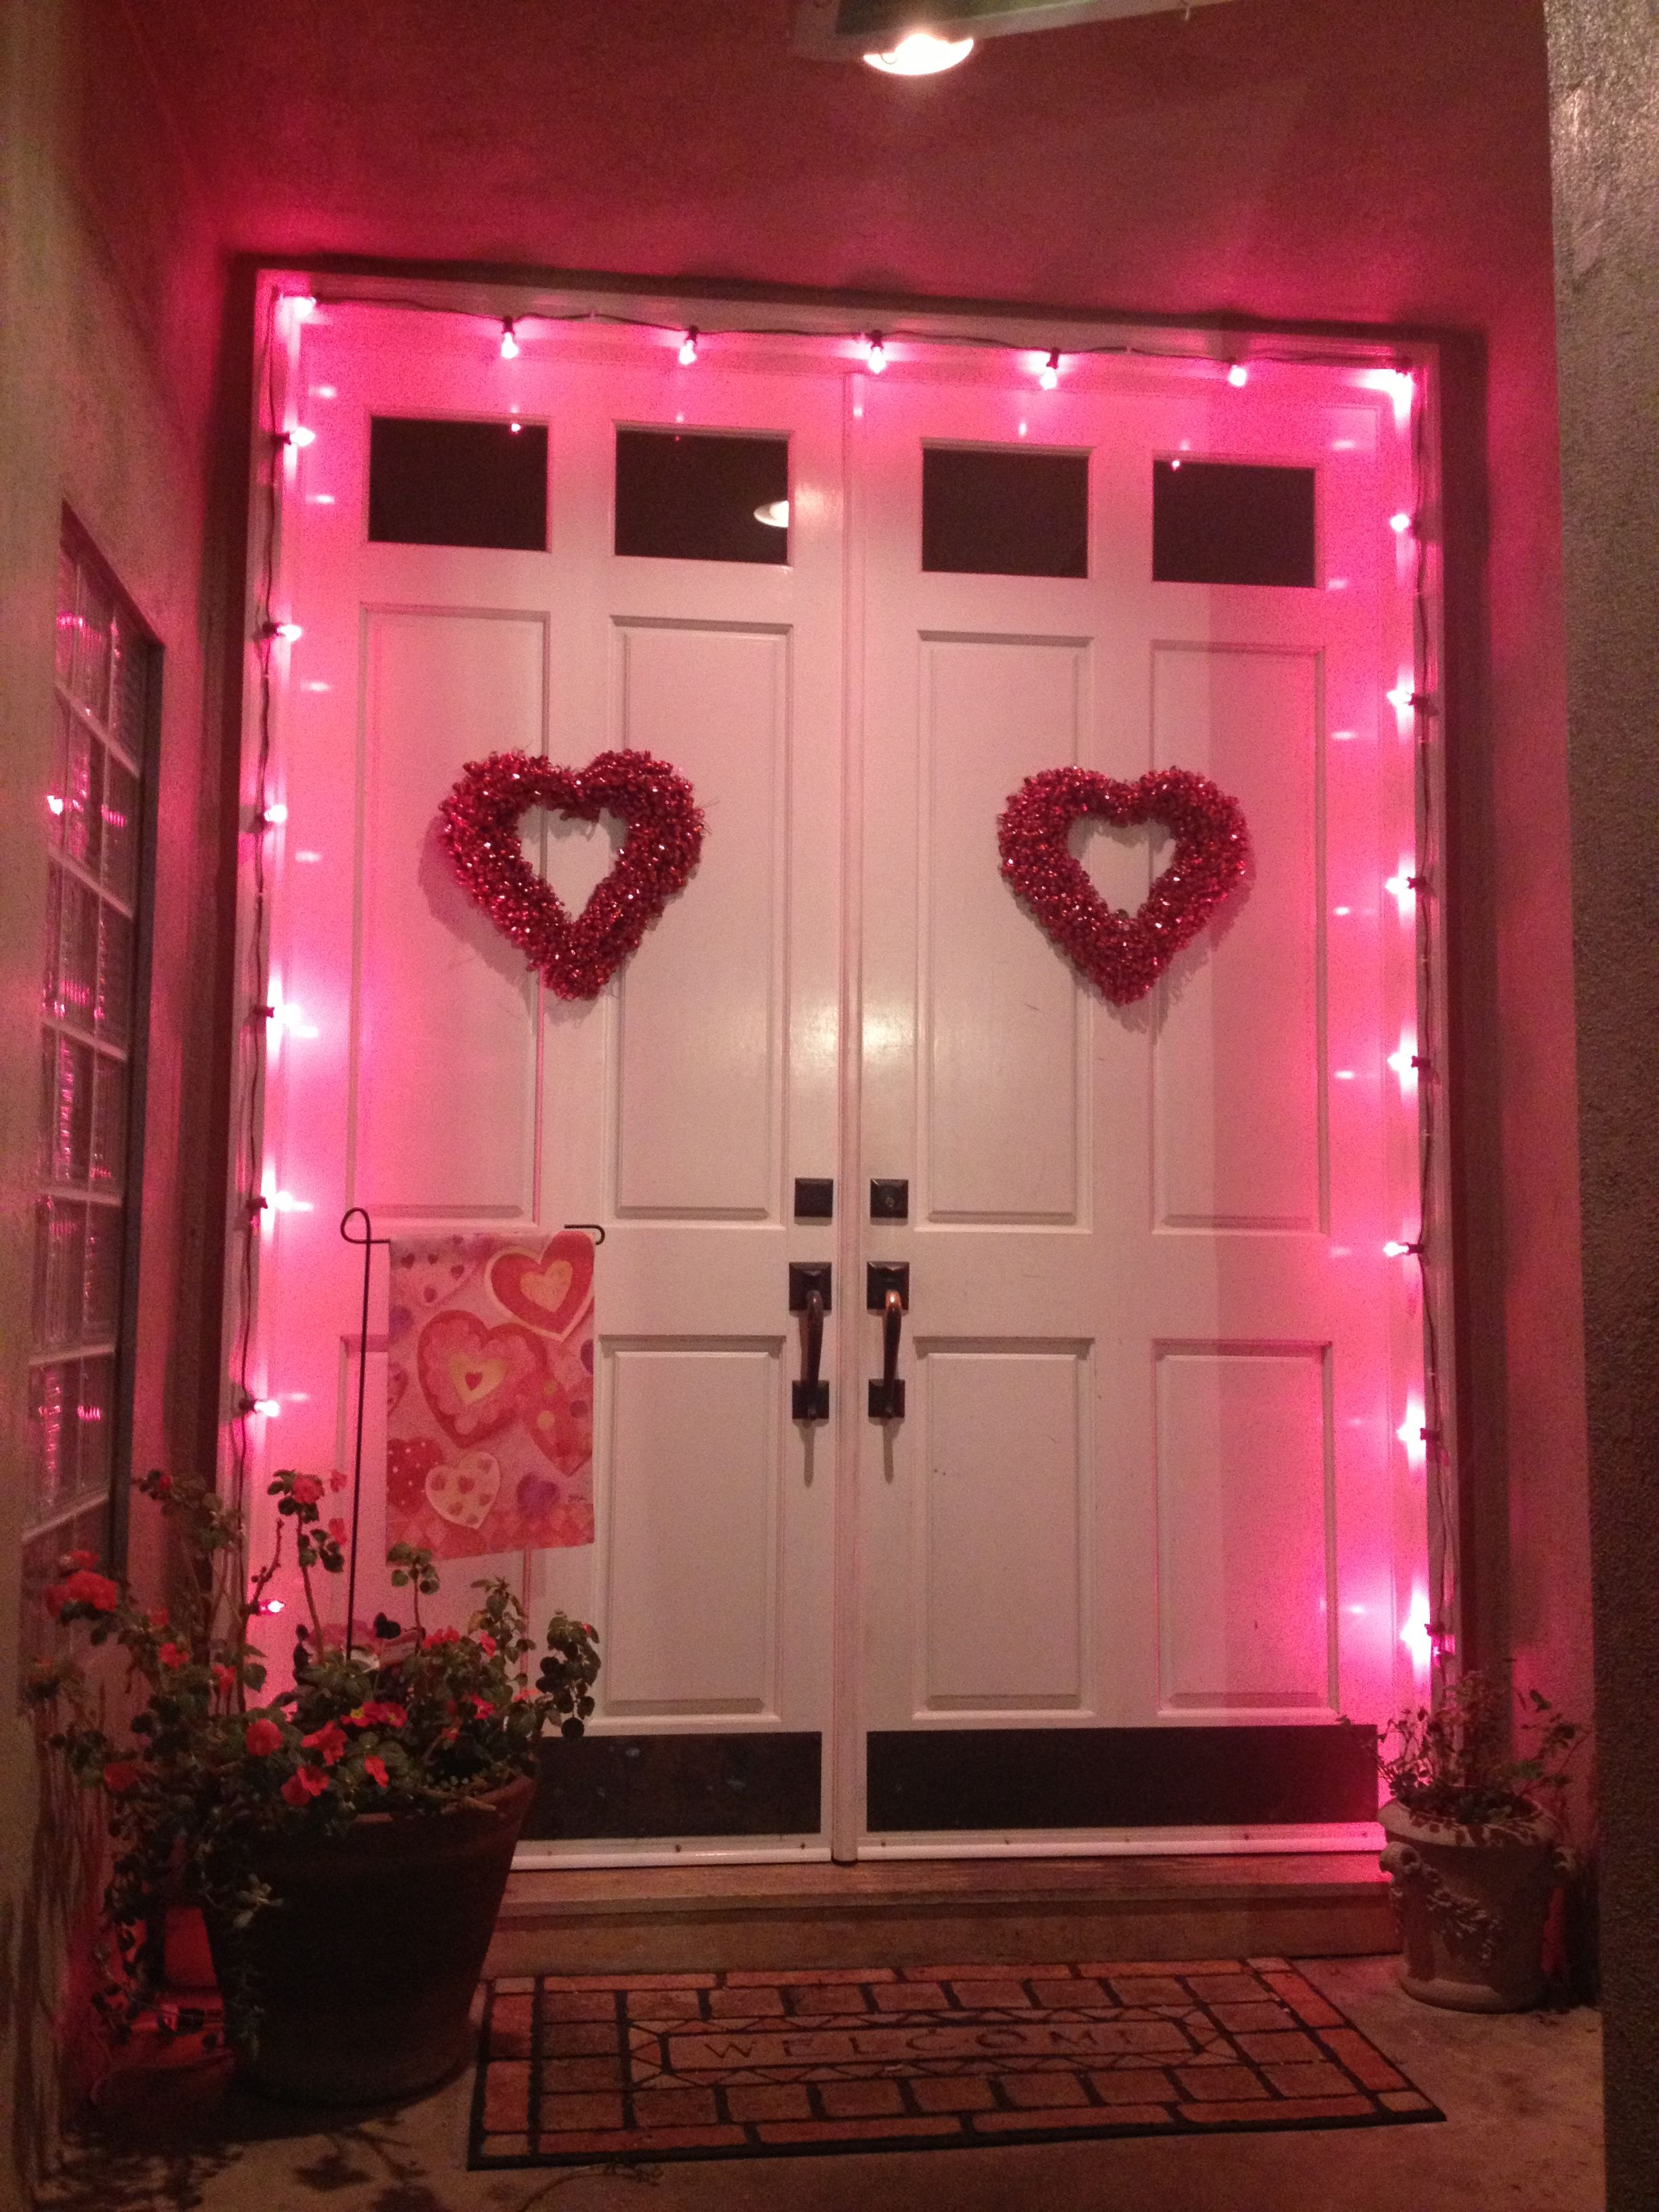 14 Charming Ways To Decorate Your Porch For Valentine S Day